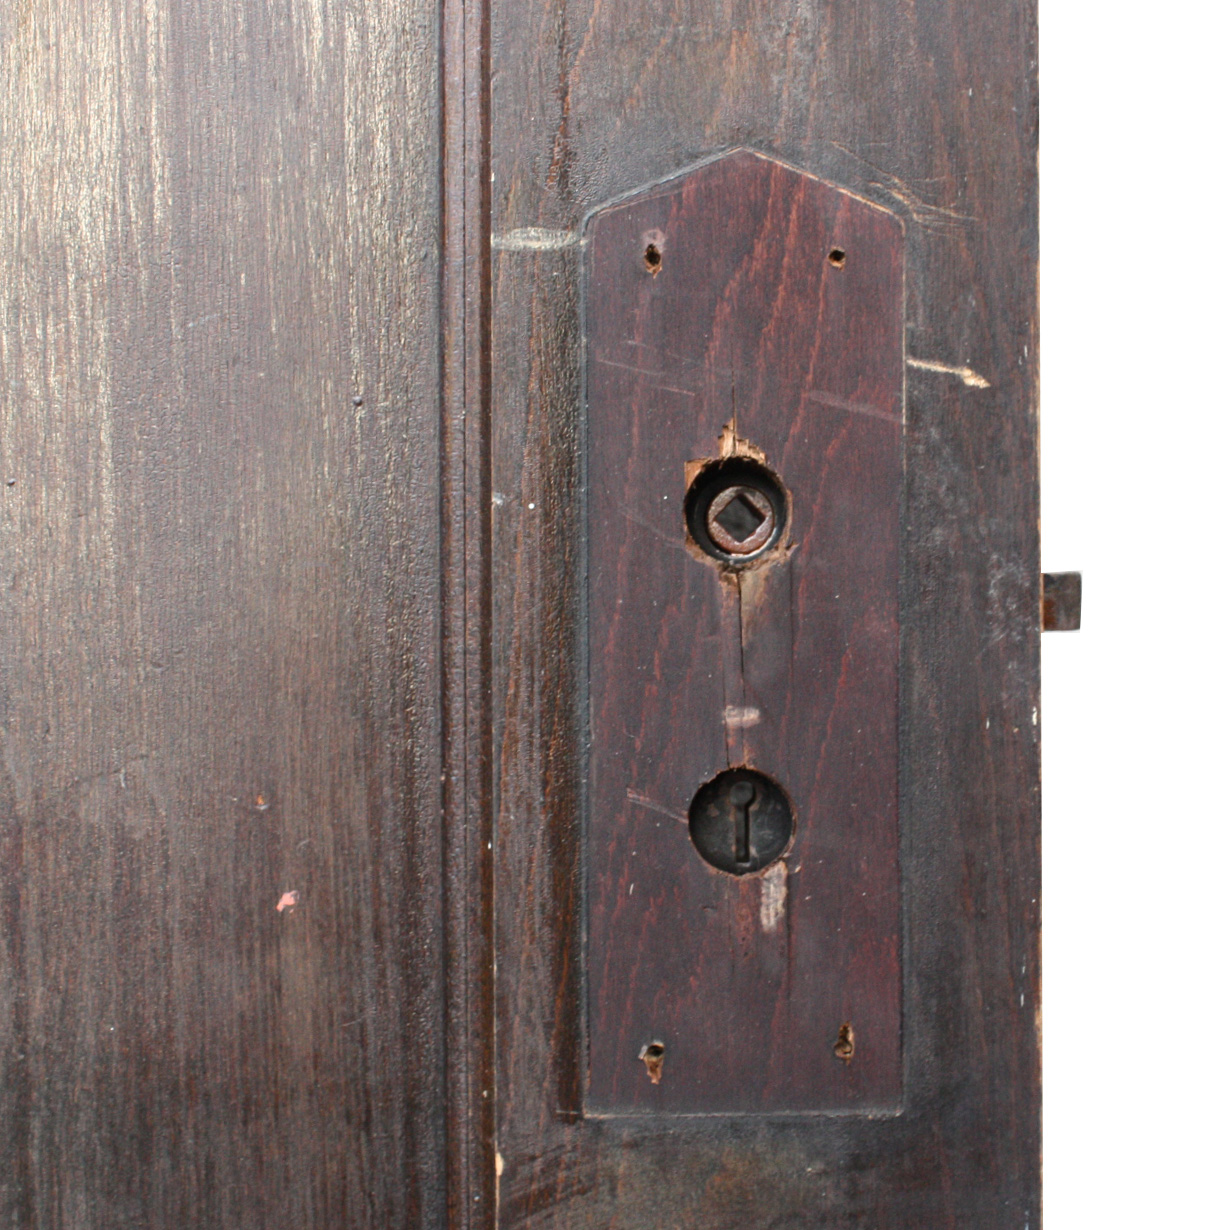 Antique Three Panel Solid Wood Door Stained Finish Nid27 For Sale Classifieds